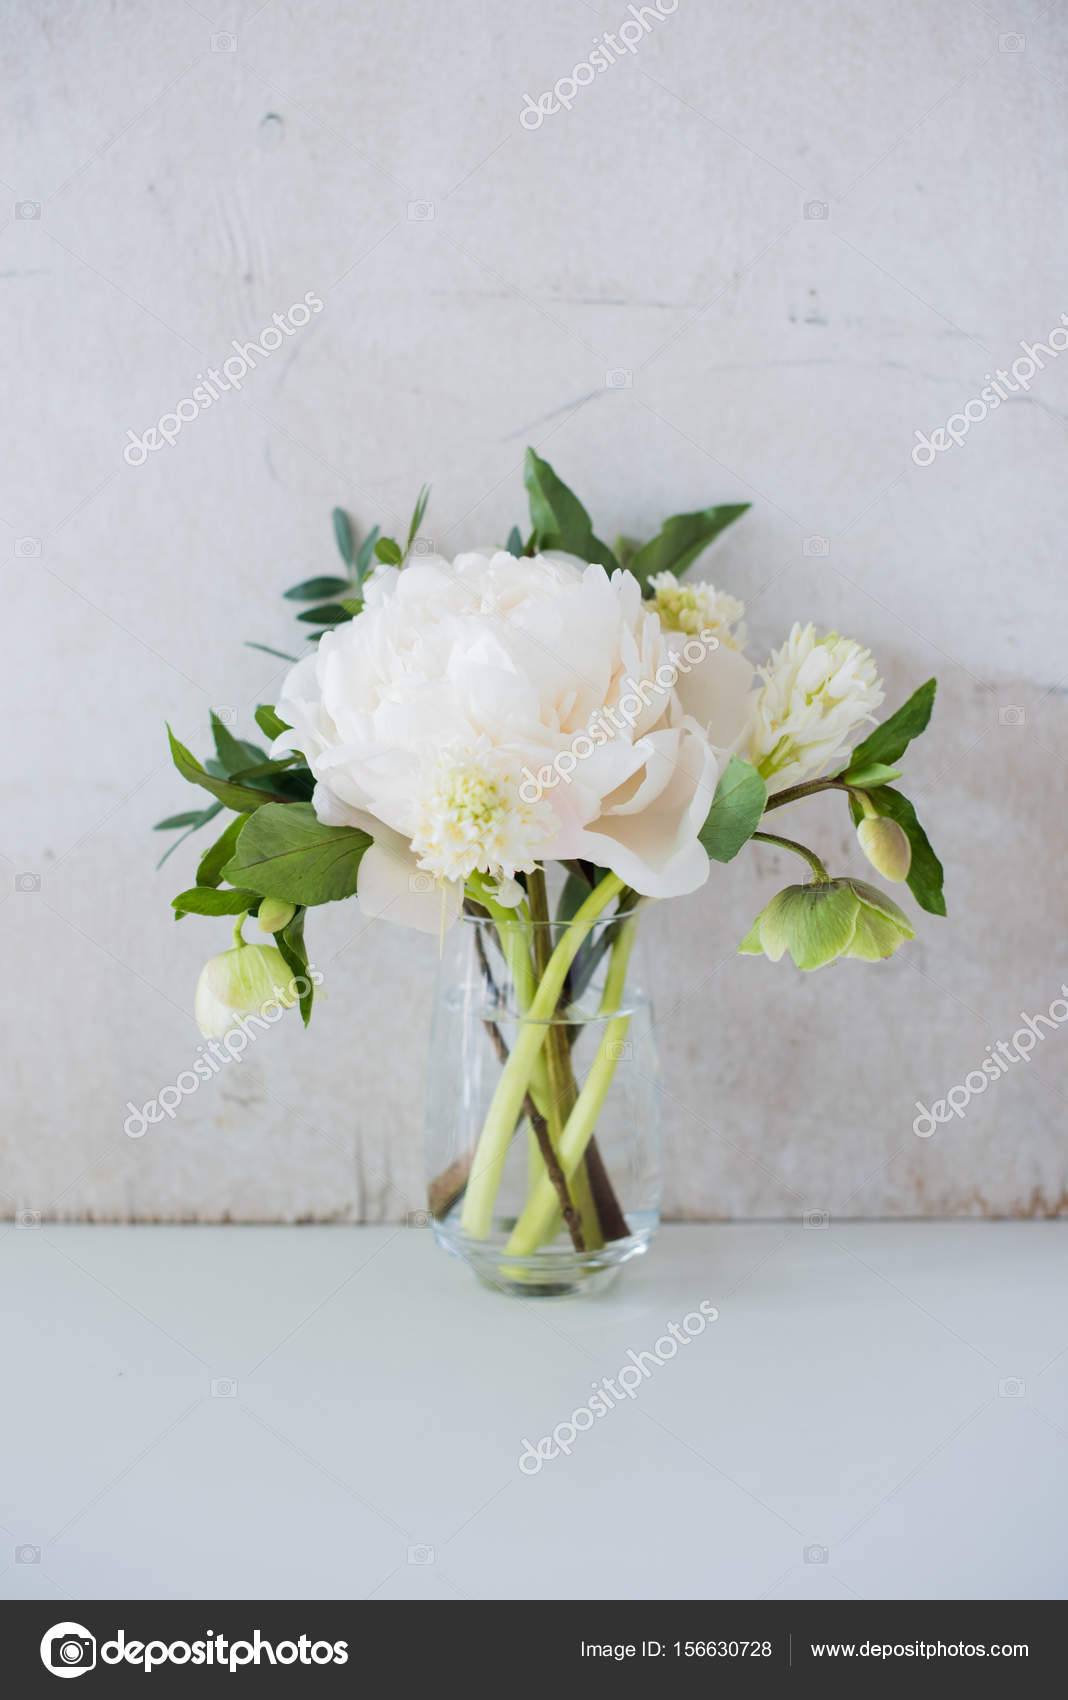 White Peony Flowers On Coffee Table In White Room Interior Brig